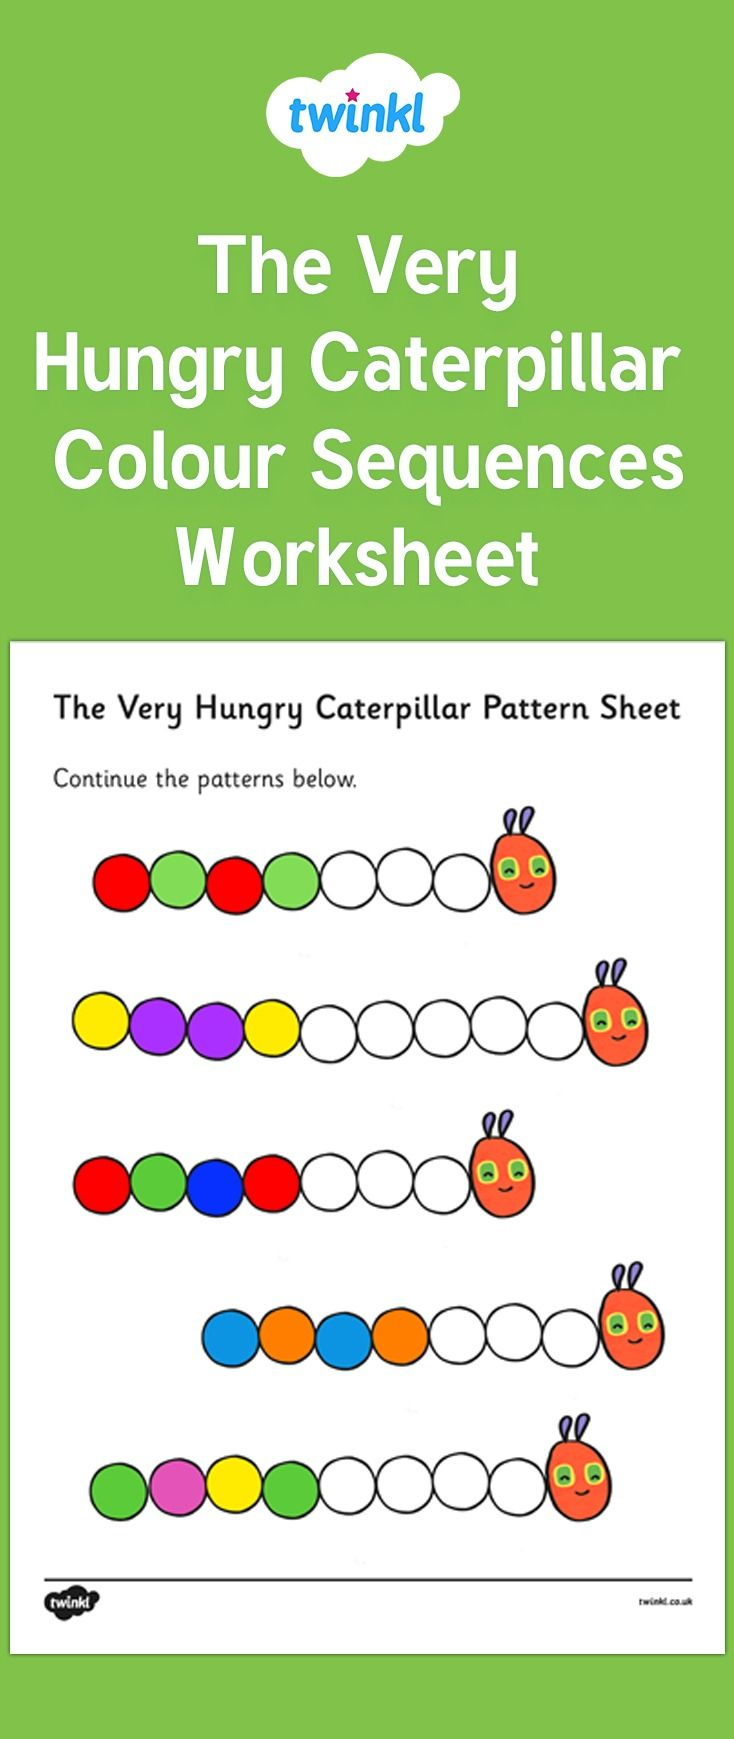 Colour Sequences Worksheet To Support Teaching On The Very Hungry Caterpillar The Very Hungry Caterpillar Activities Very Hungry Caterpillar Hungry Caterpillar Activities [ 1739 x 734 Pixel ]